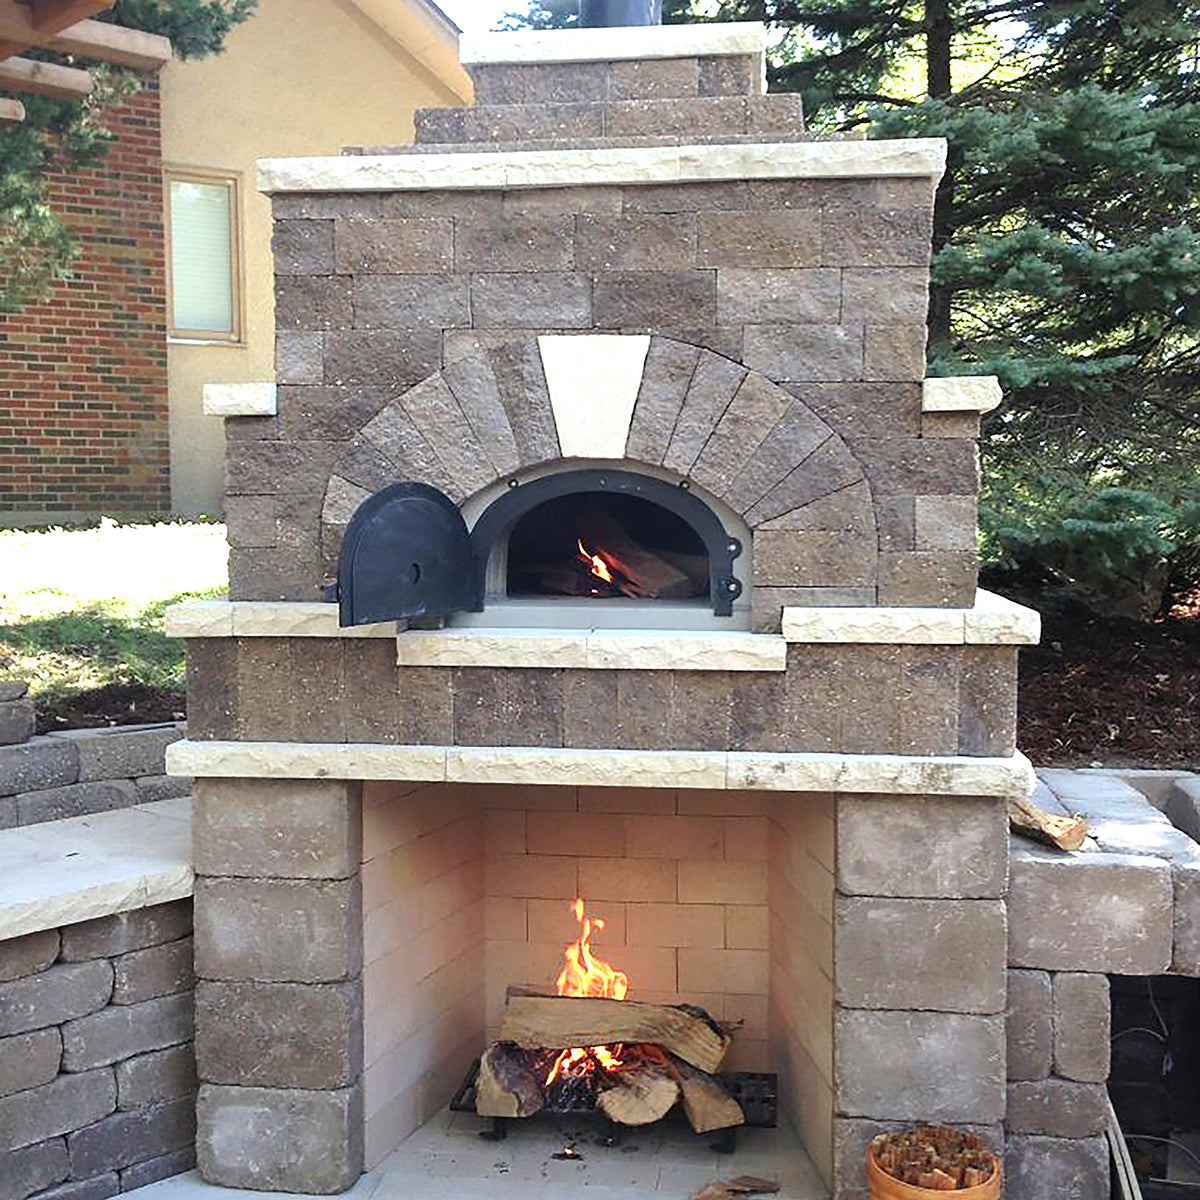 Great Outdoor Kitchen Complete With Pizza Oven: CBO-500 Outdoor Pizza Oven DIY Kit